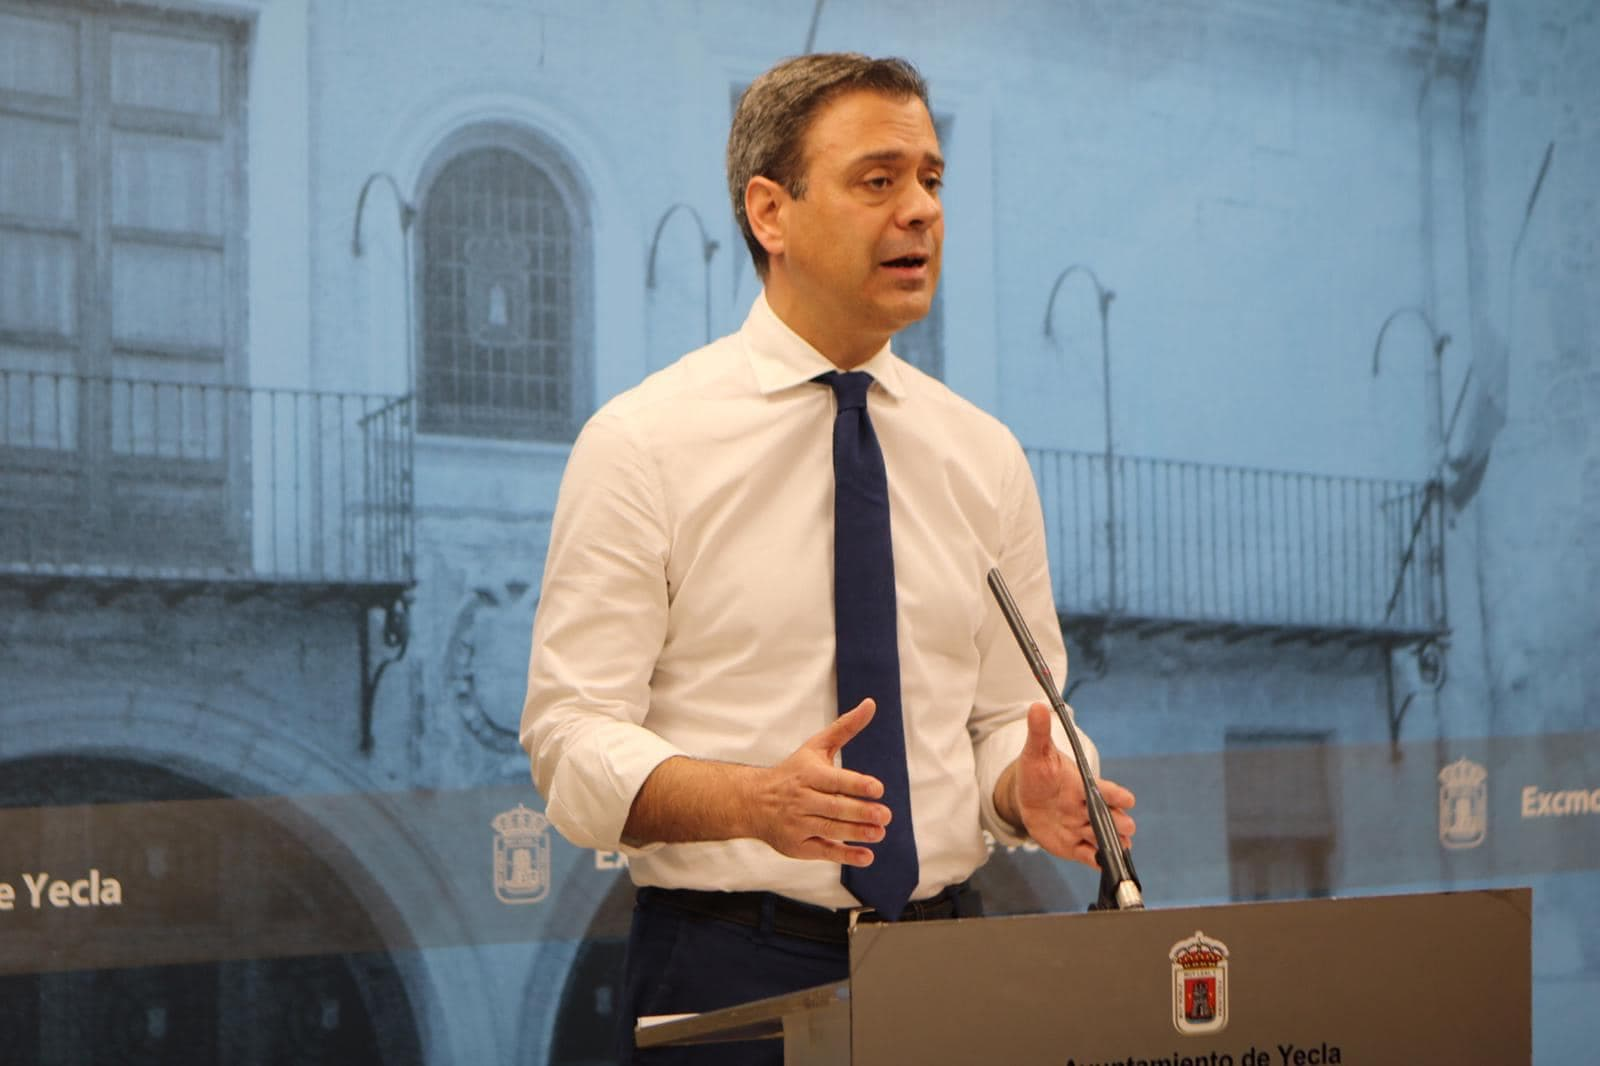 Warning of €450 million summer losses if UK tourists can't go to the Mar Menor and Costa Calida areas of Murcia in Spain